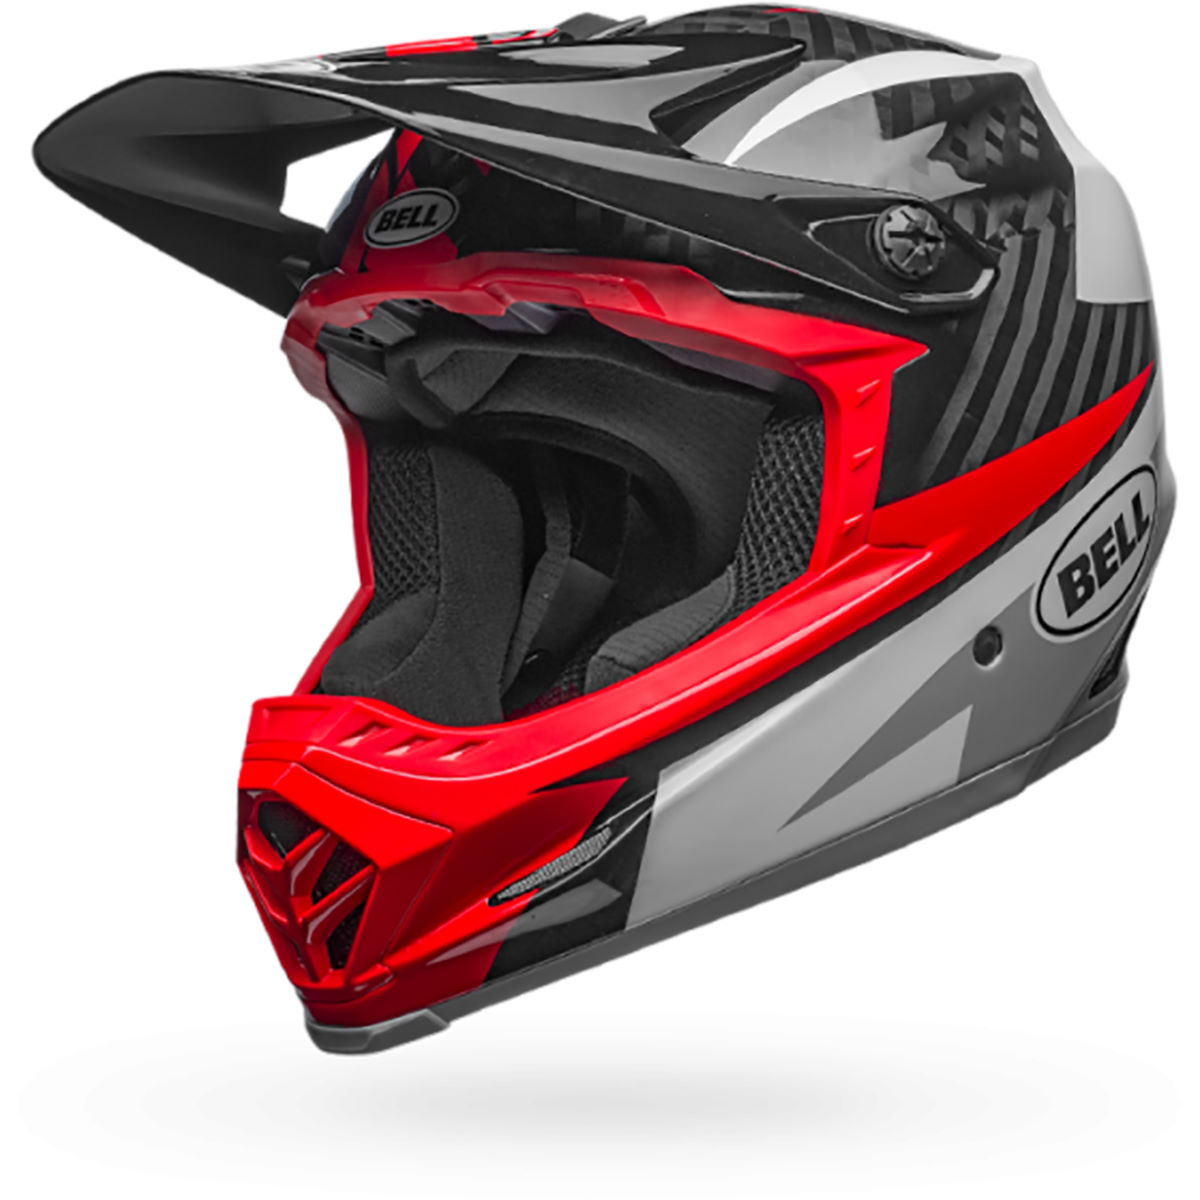 Casque VTT Bell Full-9 - XL/XXL Gloss White/Black/Hi Casques